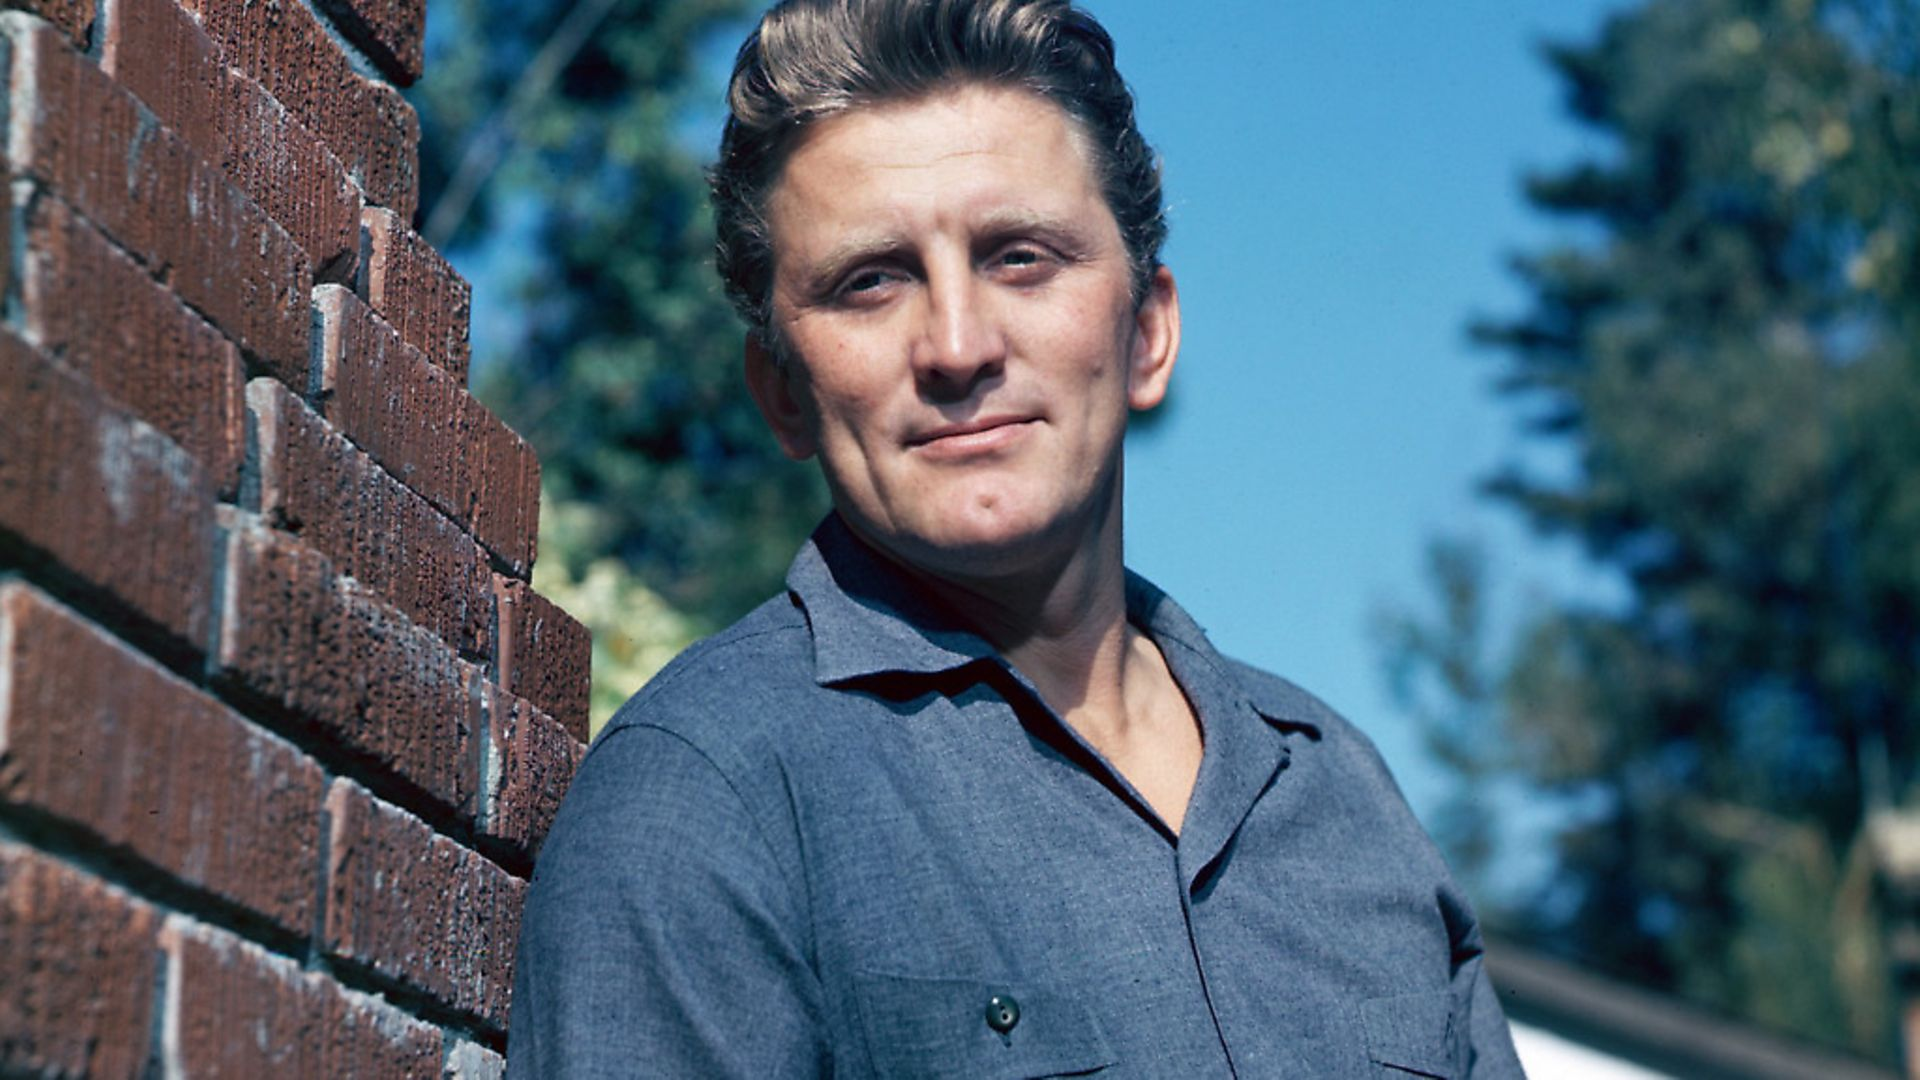 American actor Kirk Douglas, circa 1955. Photo: Getty Images - Credit: Getty Images